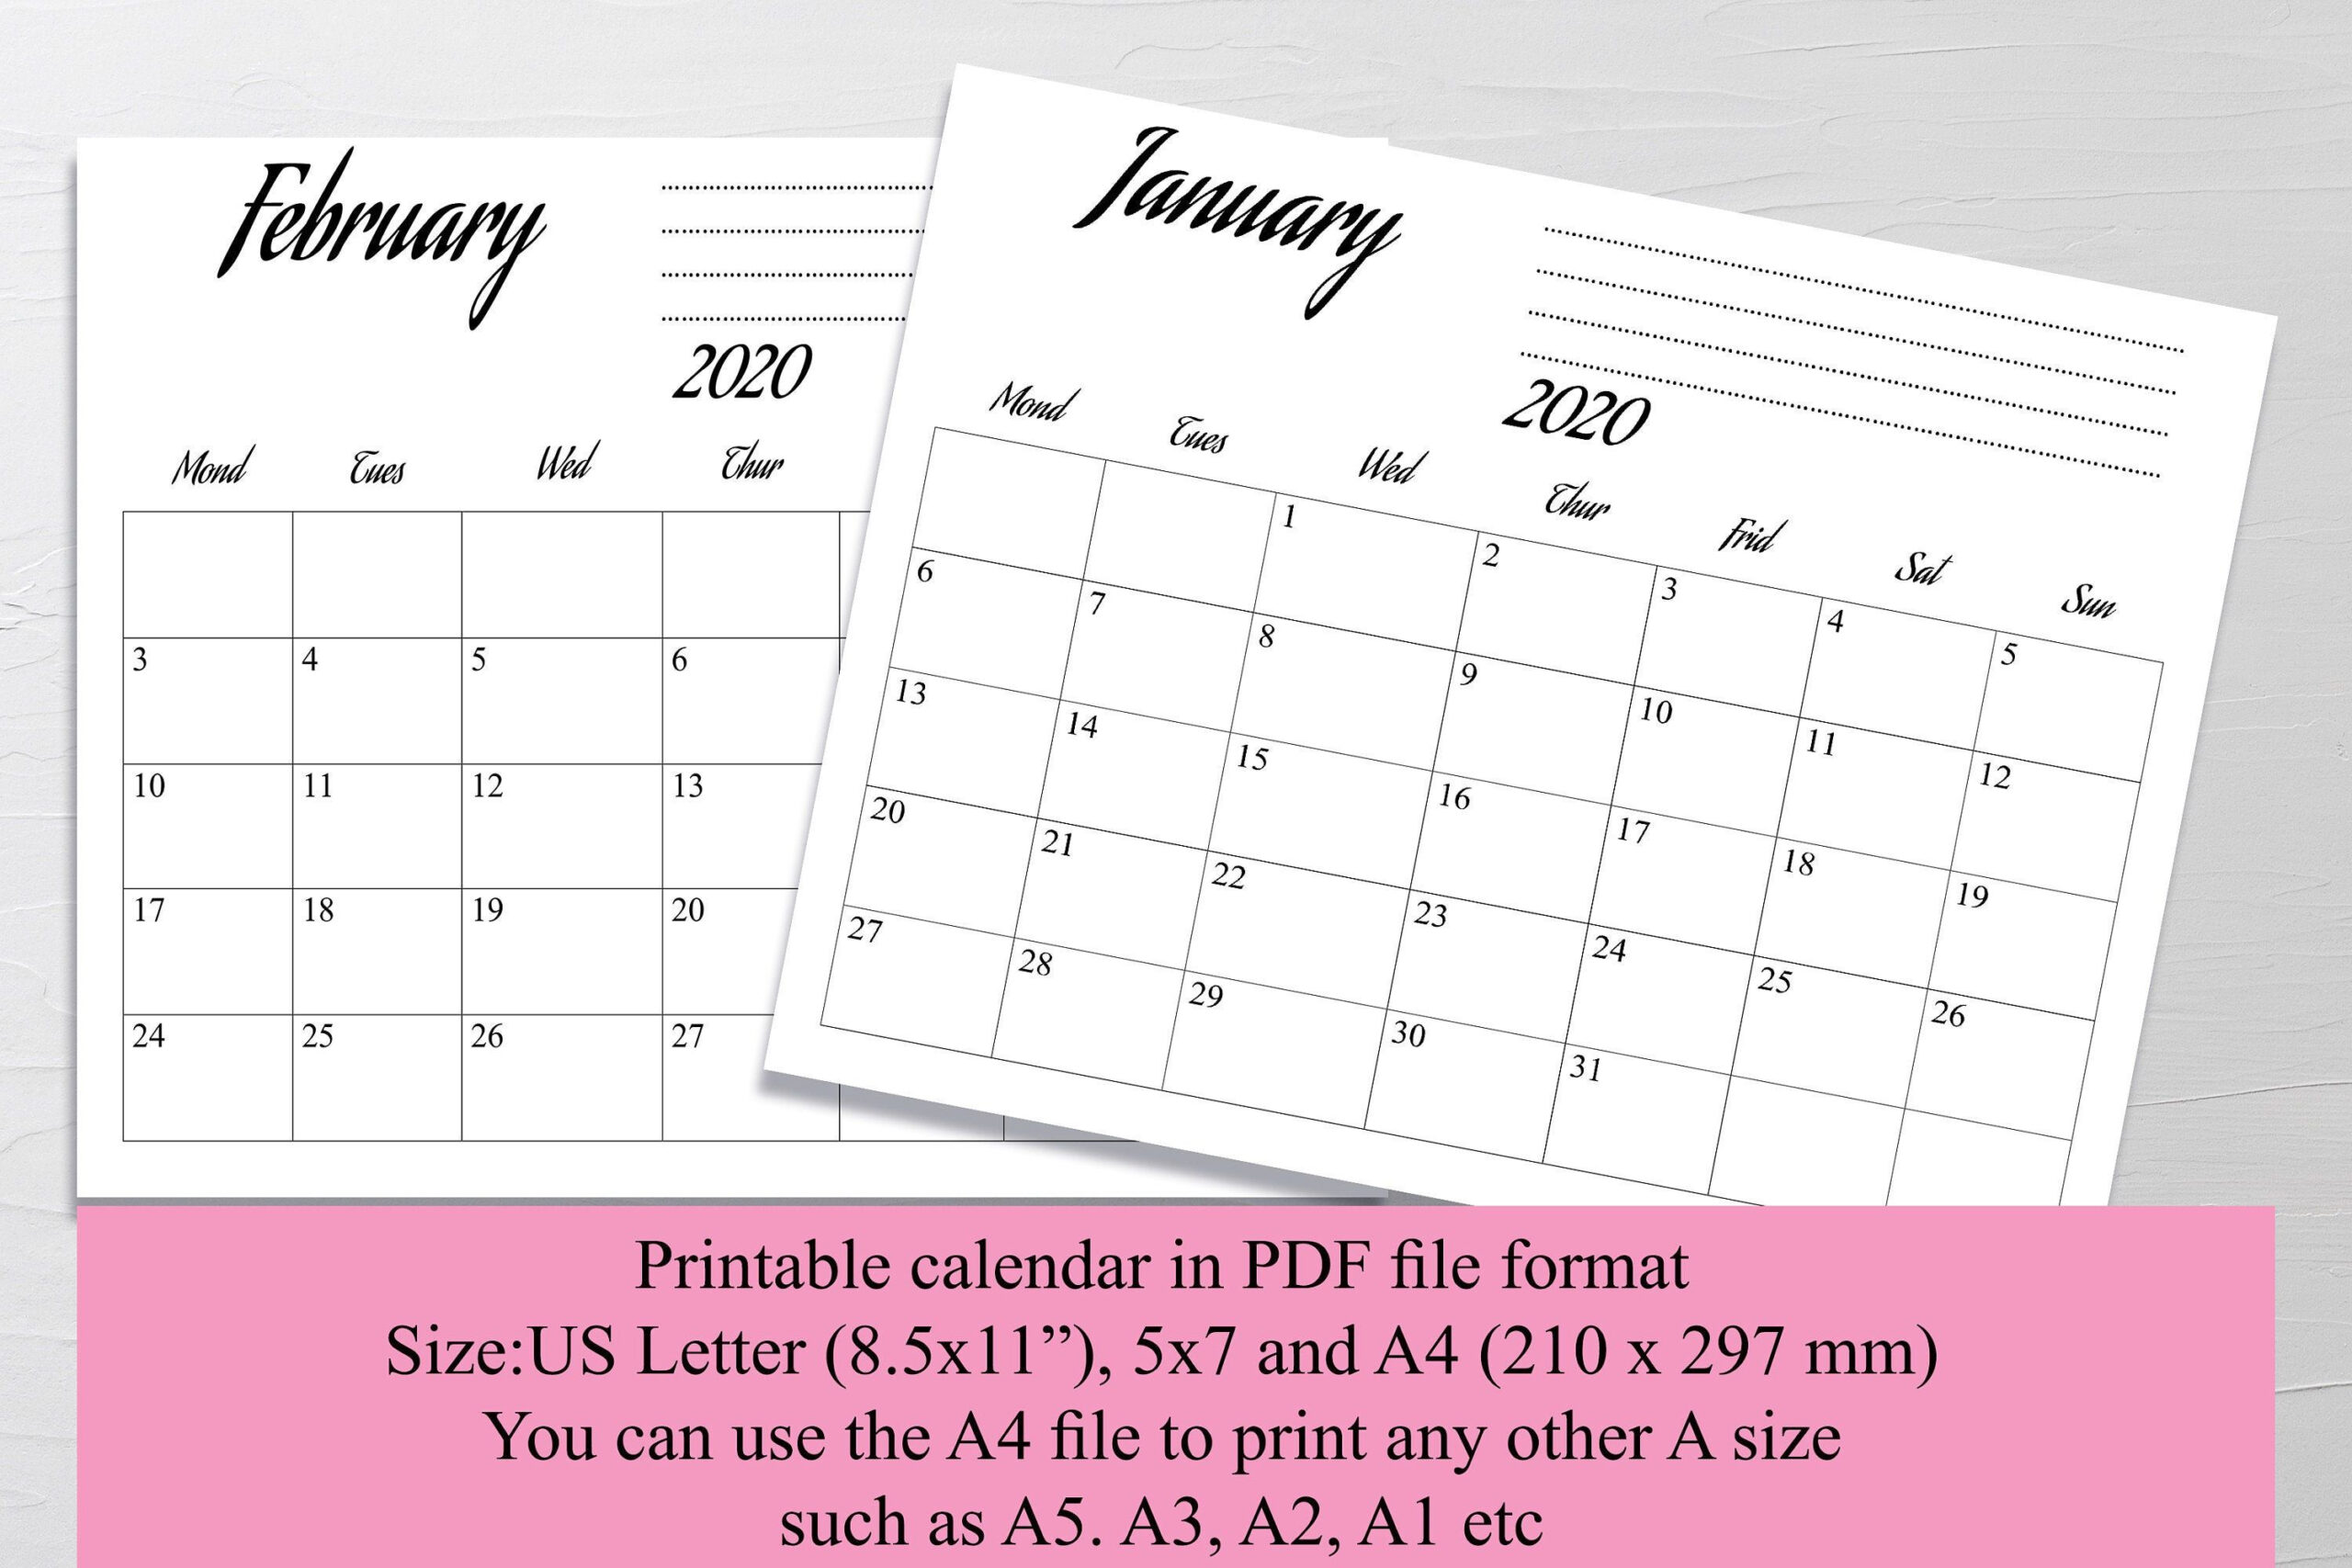 2020 Calendar Digital Download Pdf, Horizontal Calendar regarding Free Printable Small Pocket Calendars